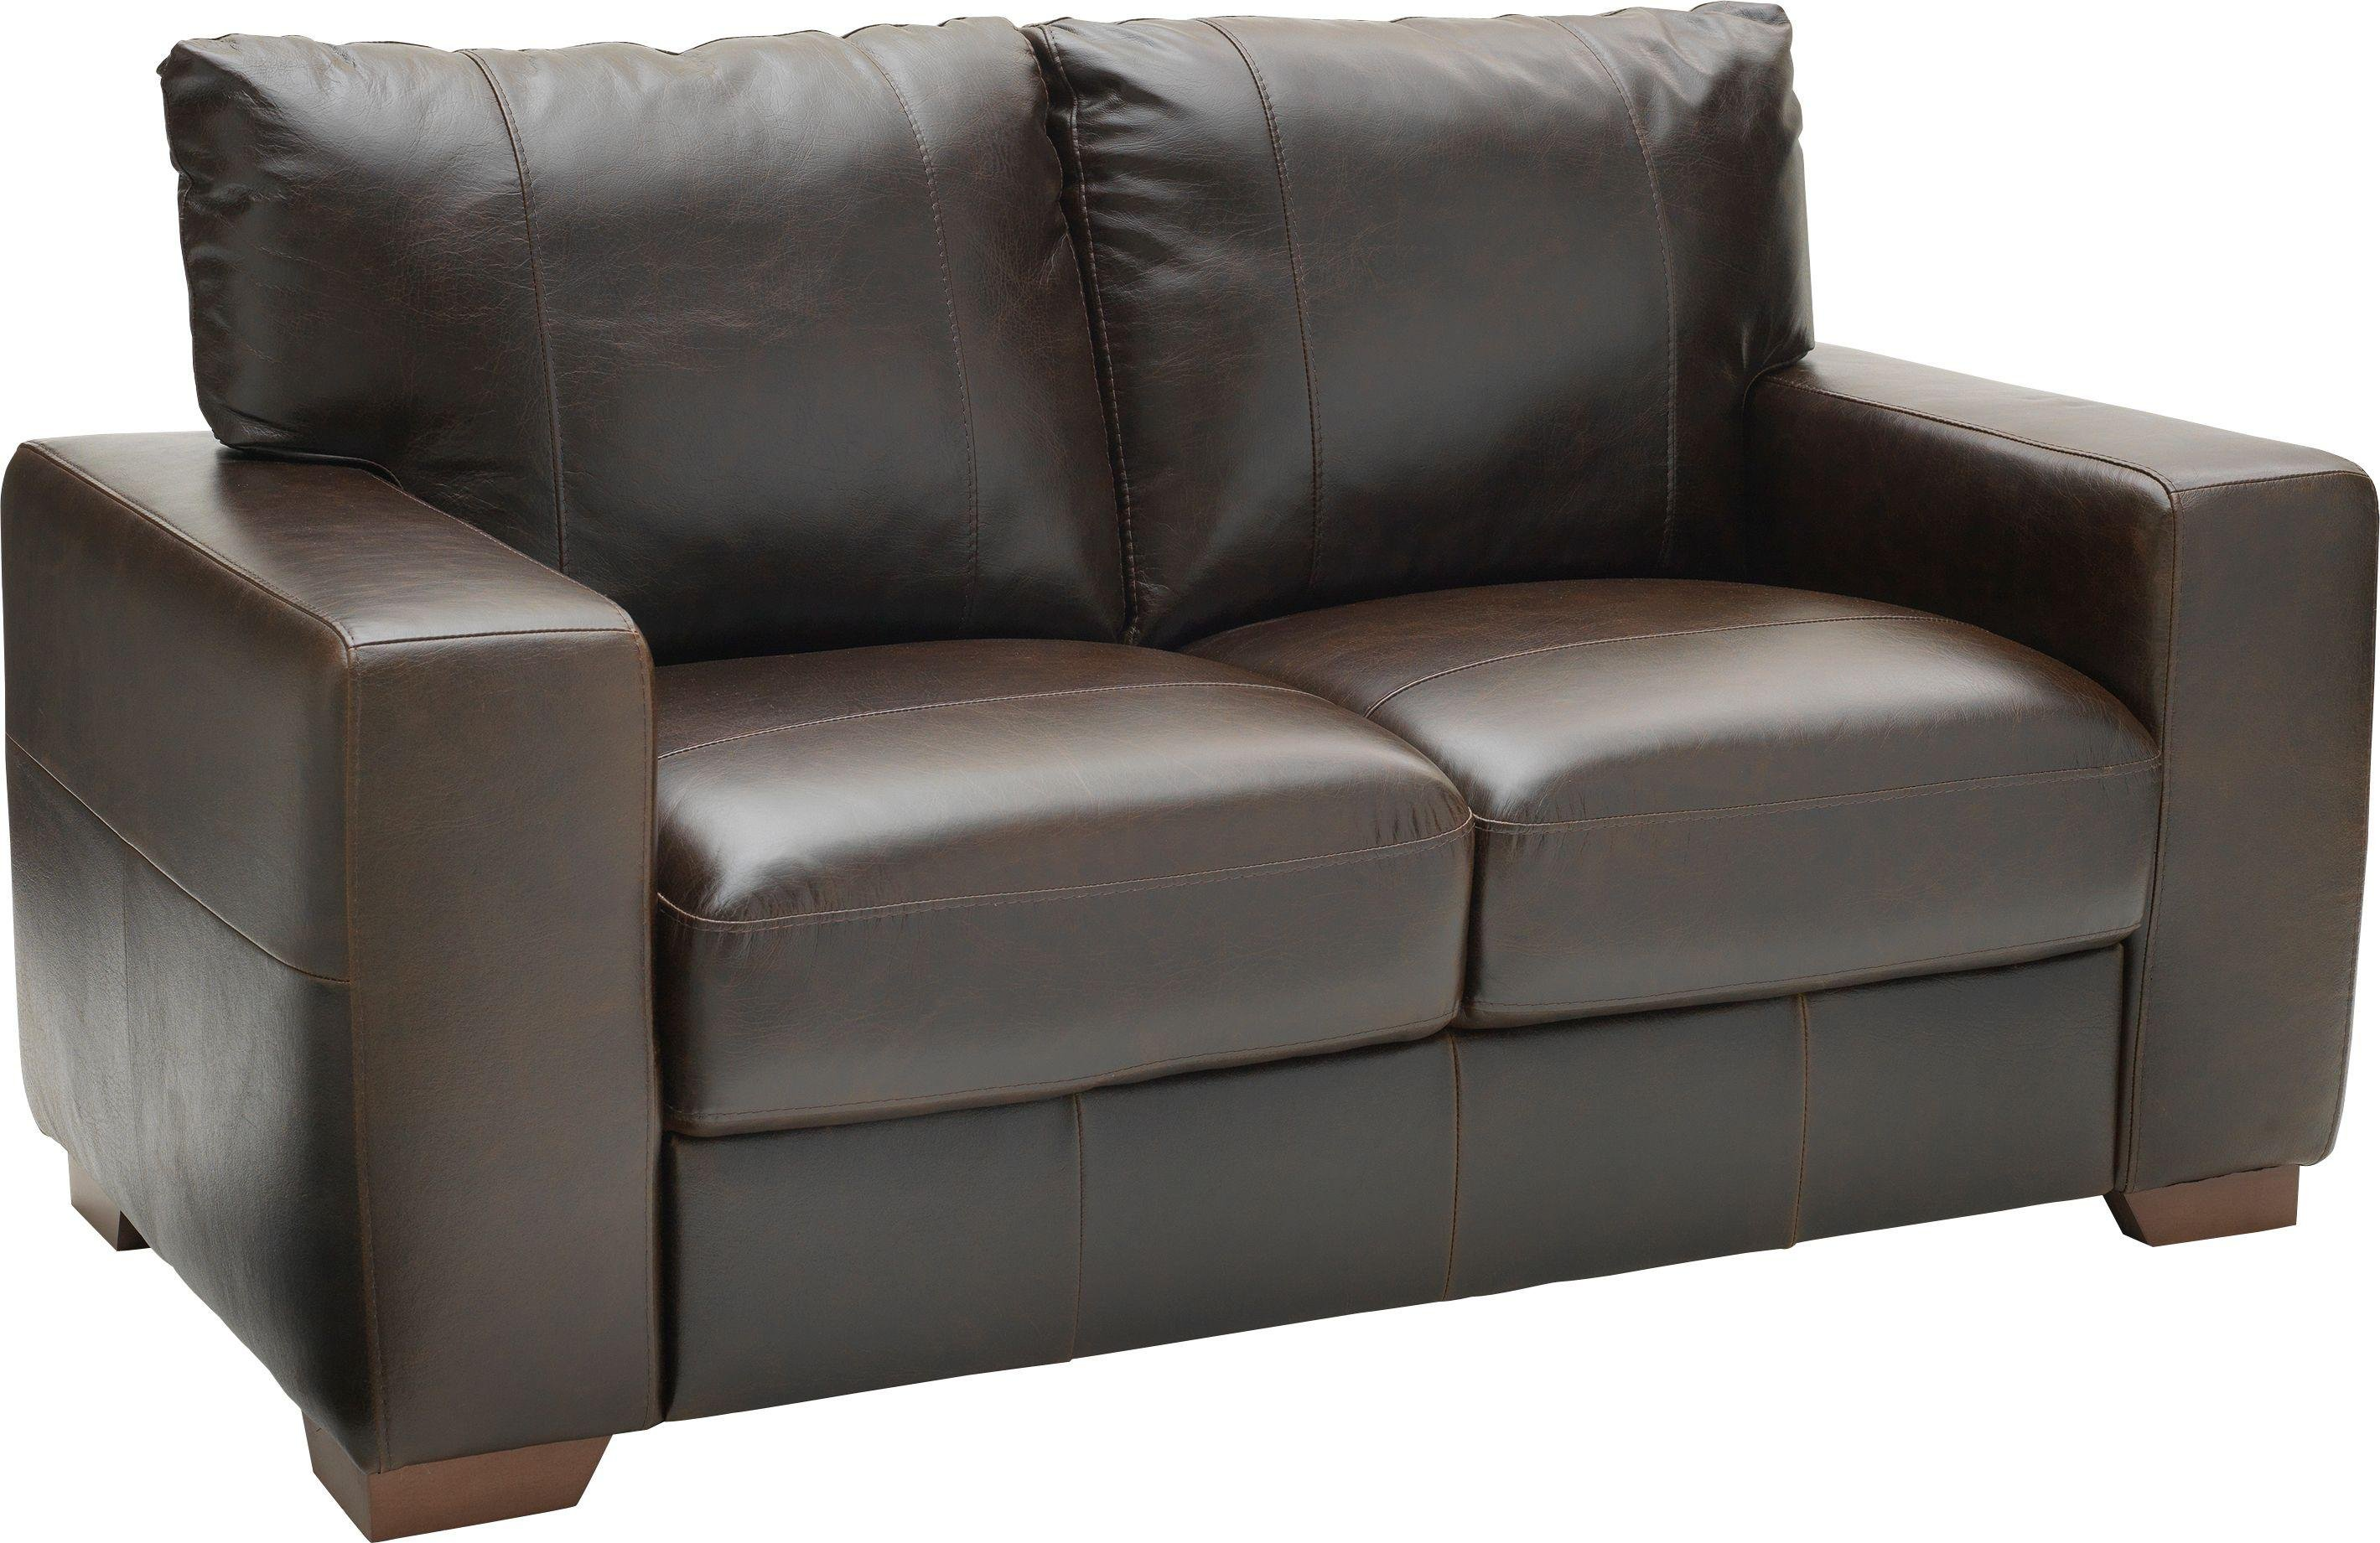 Argos Home Eton 2 Seater Leather Sofa - Dark Brown